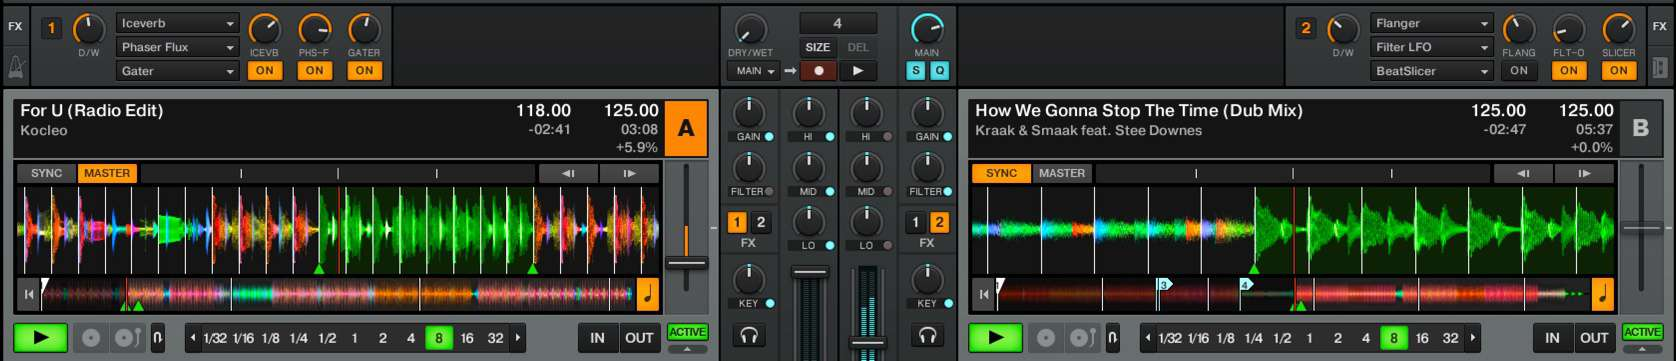 Advanced DJ mixing techniques - Step by step guides to DJ